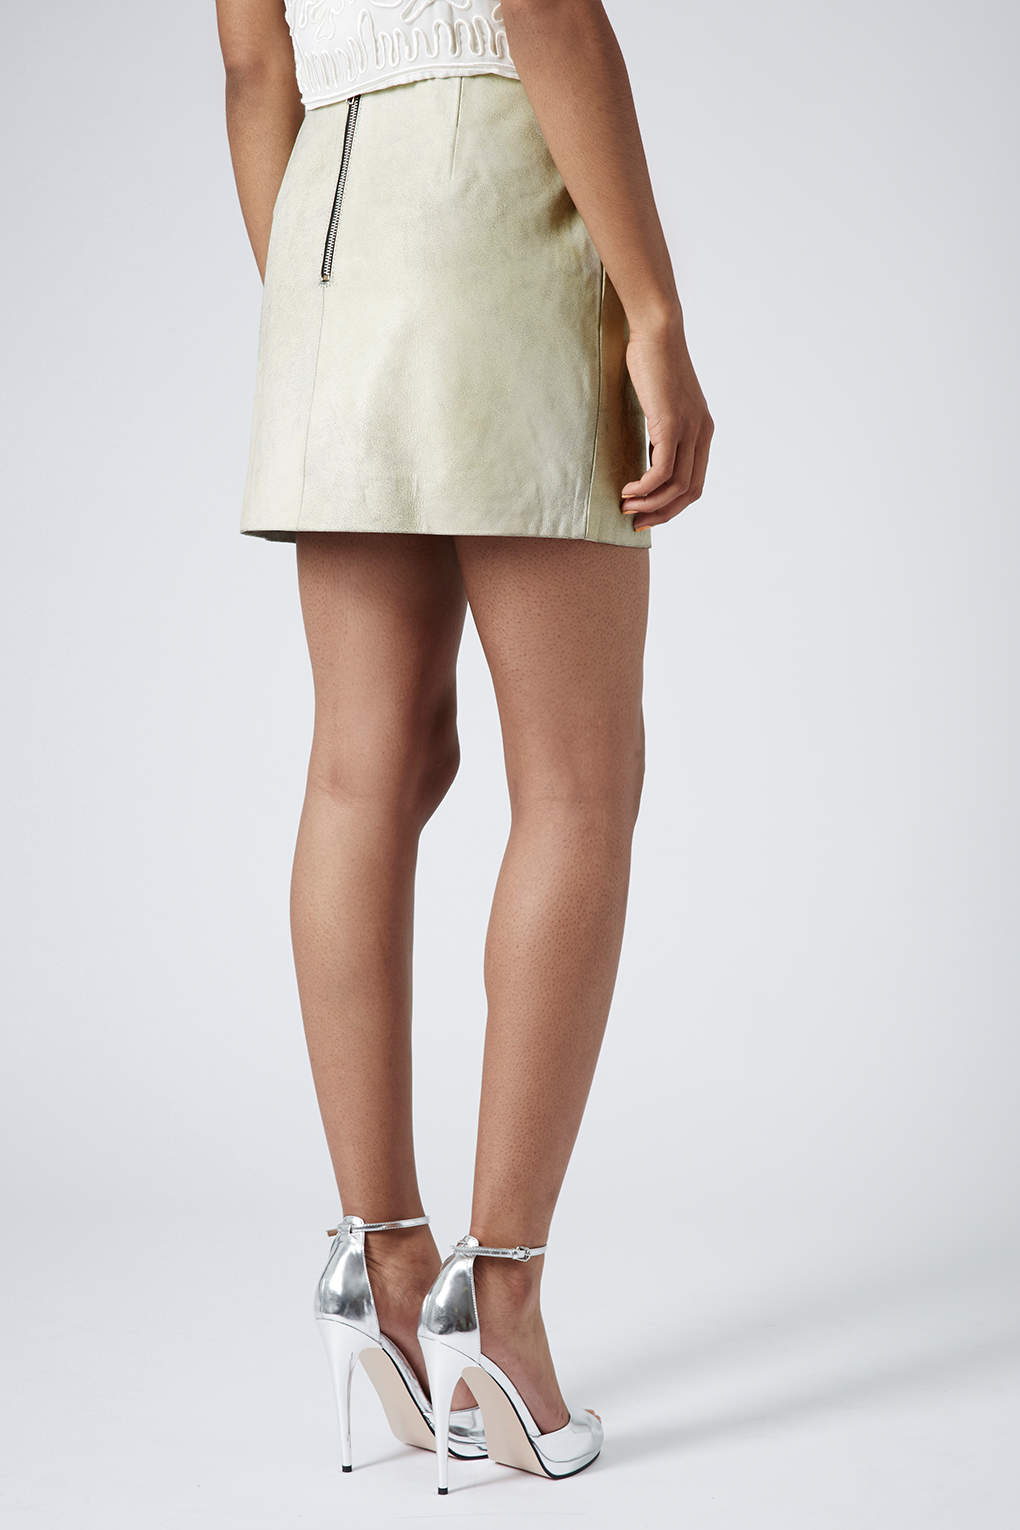 topshop cracked leather mini skirt in white lyst